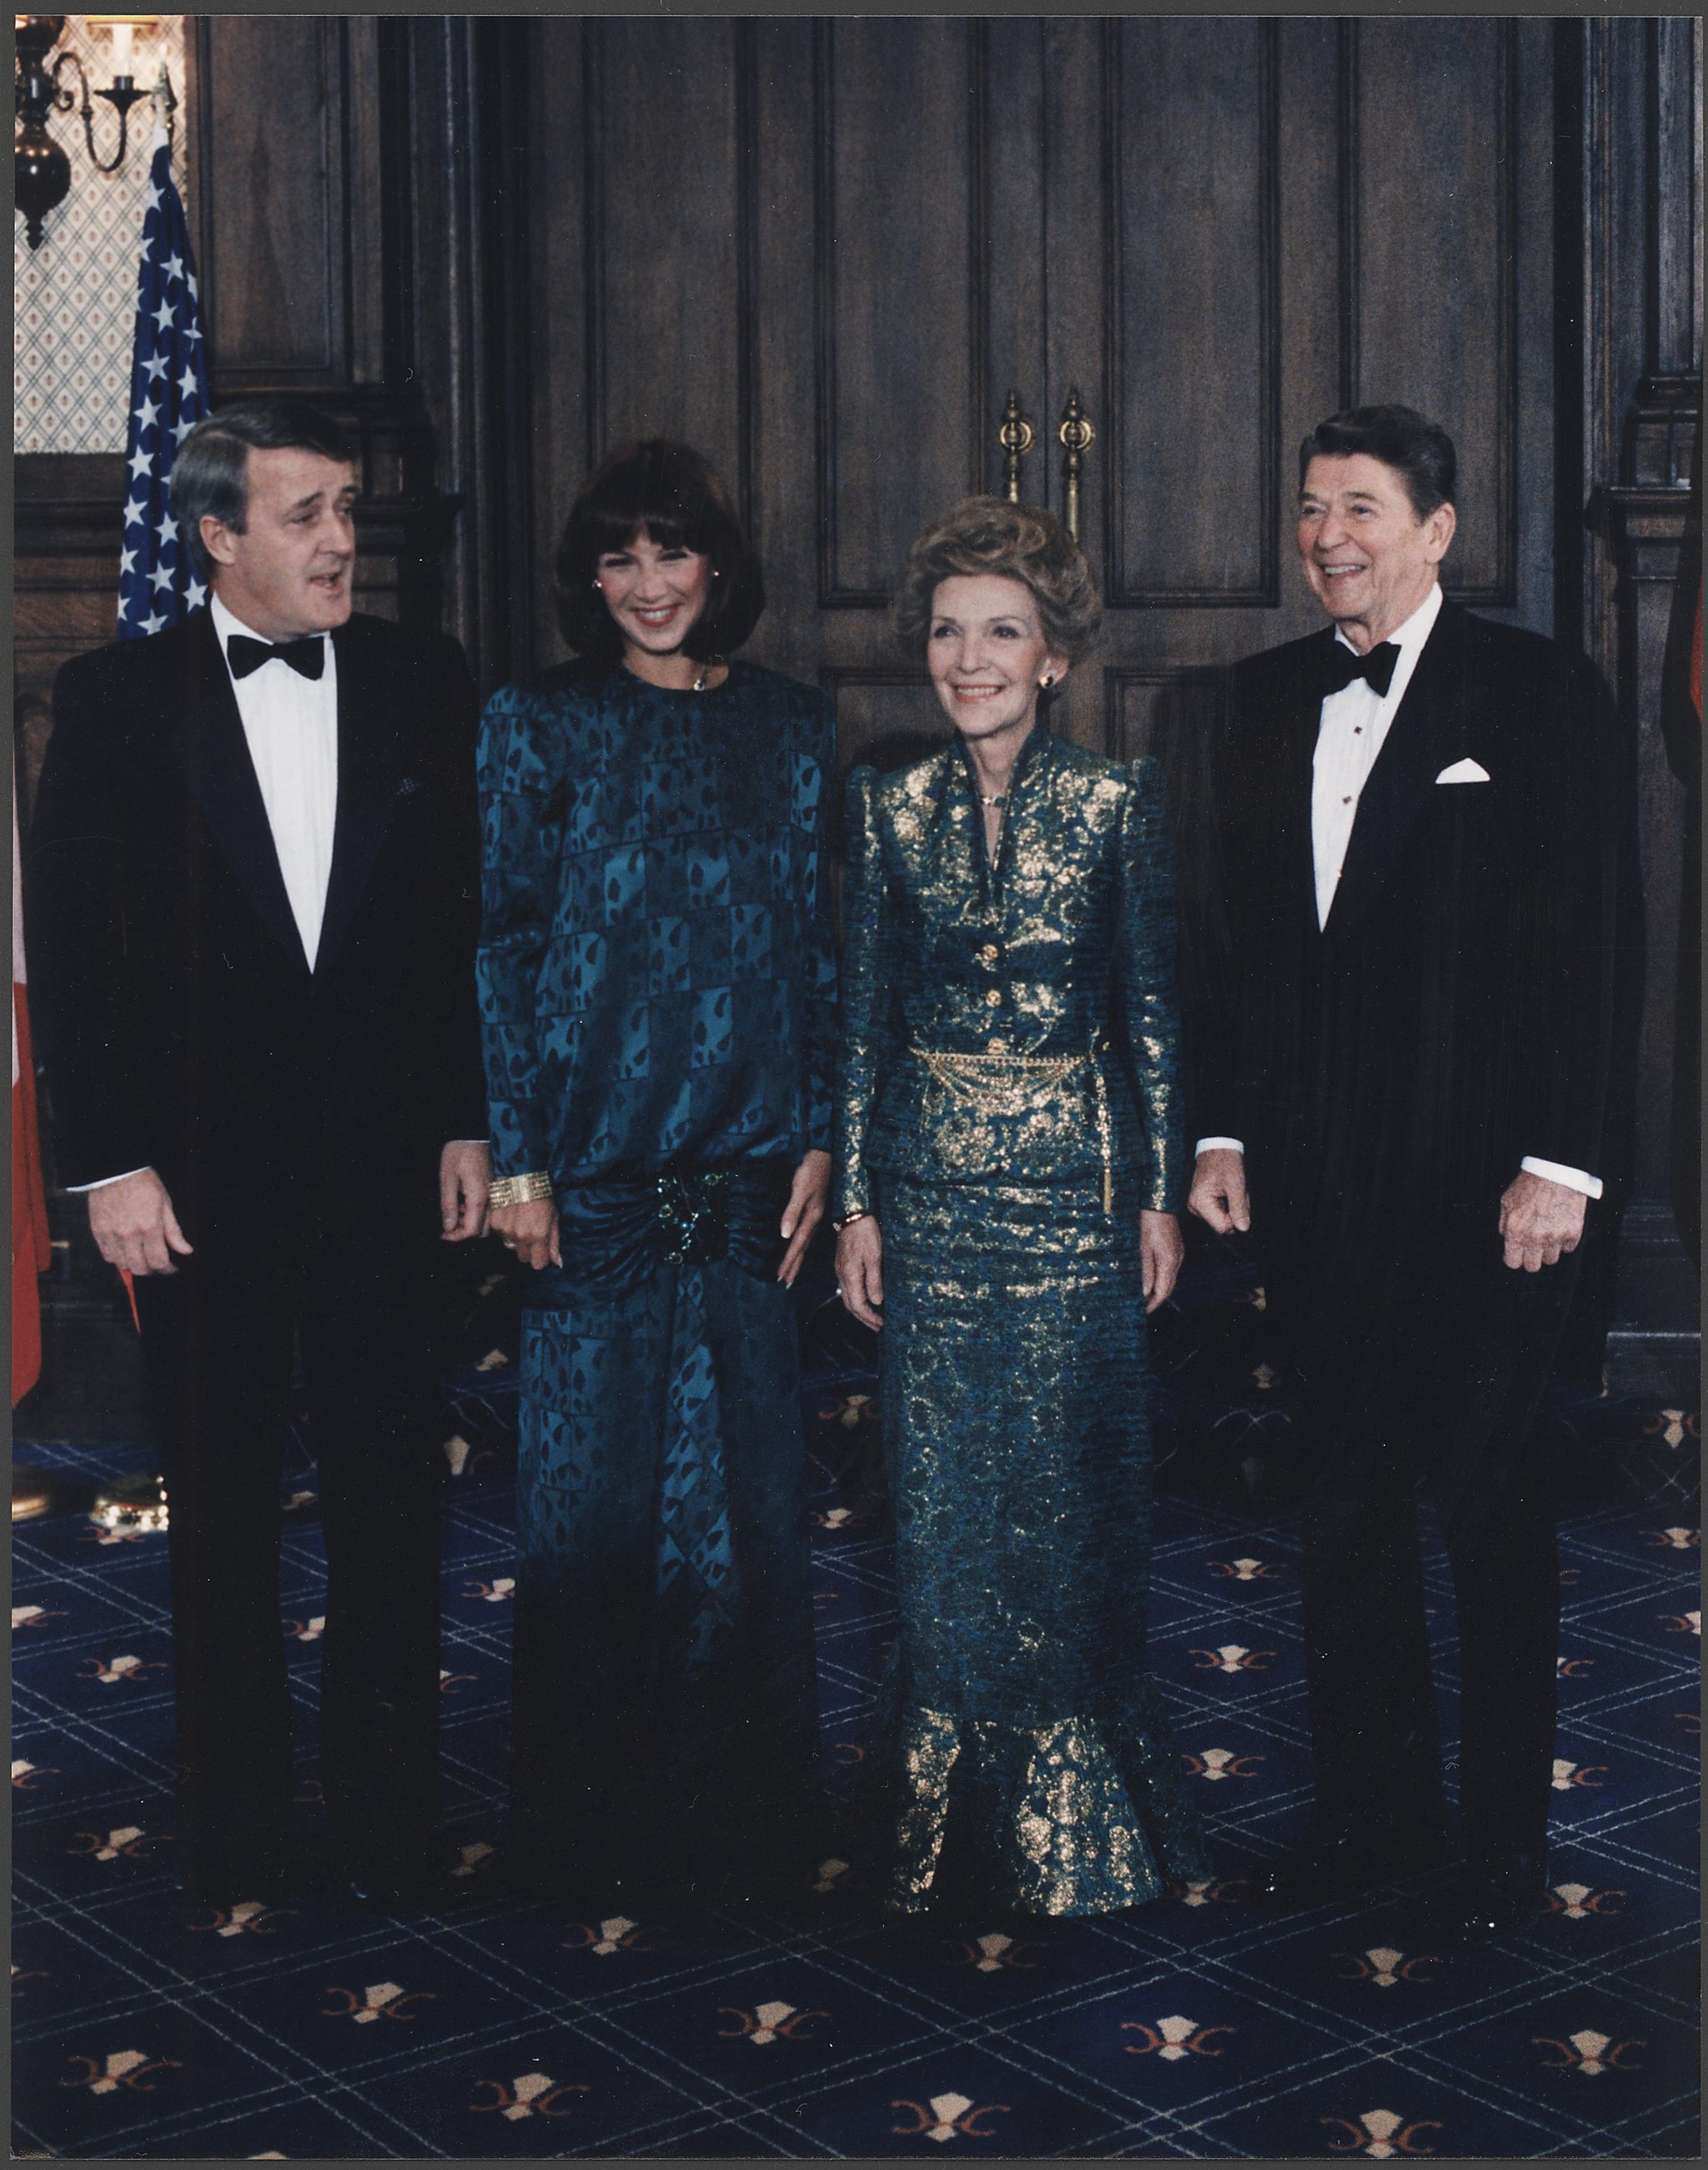 ex Canadian PM Brian Mulroney with wife Mila and Ron and Nancy Reagan